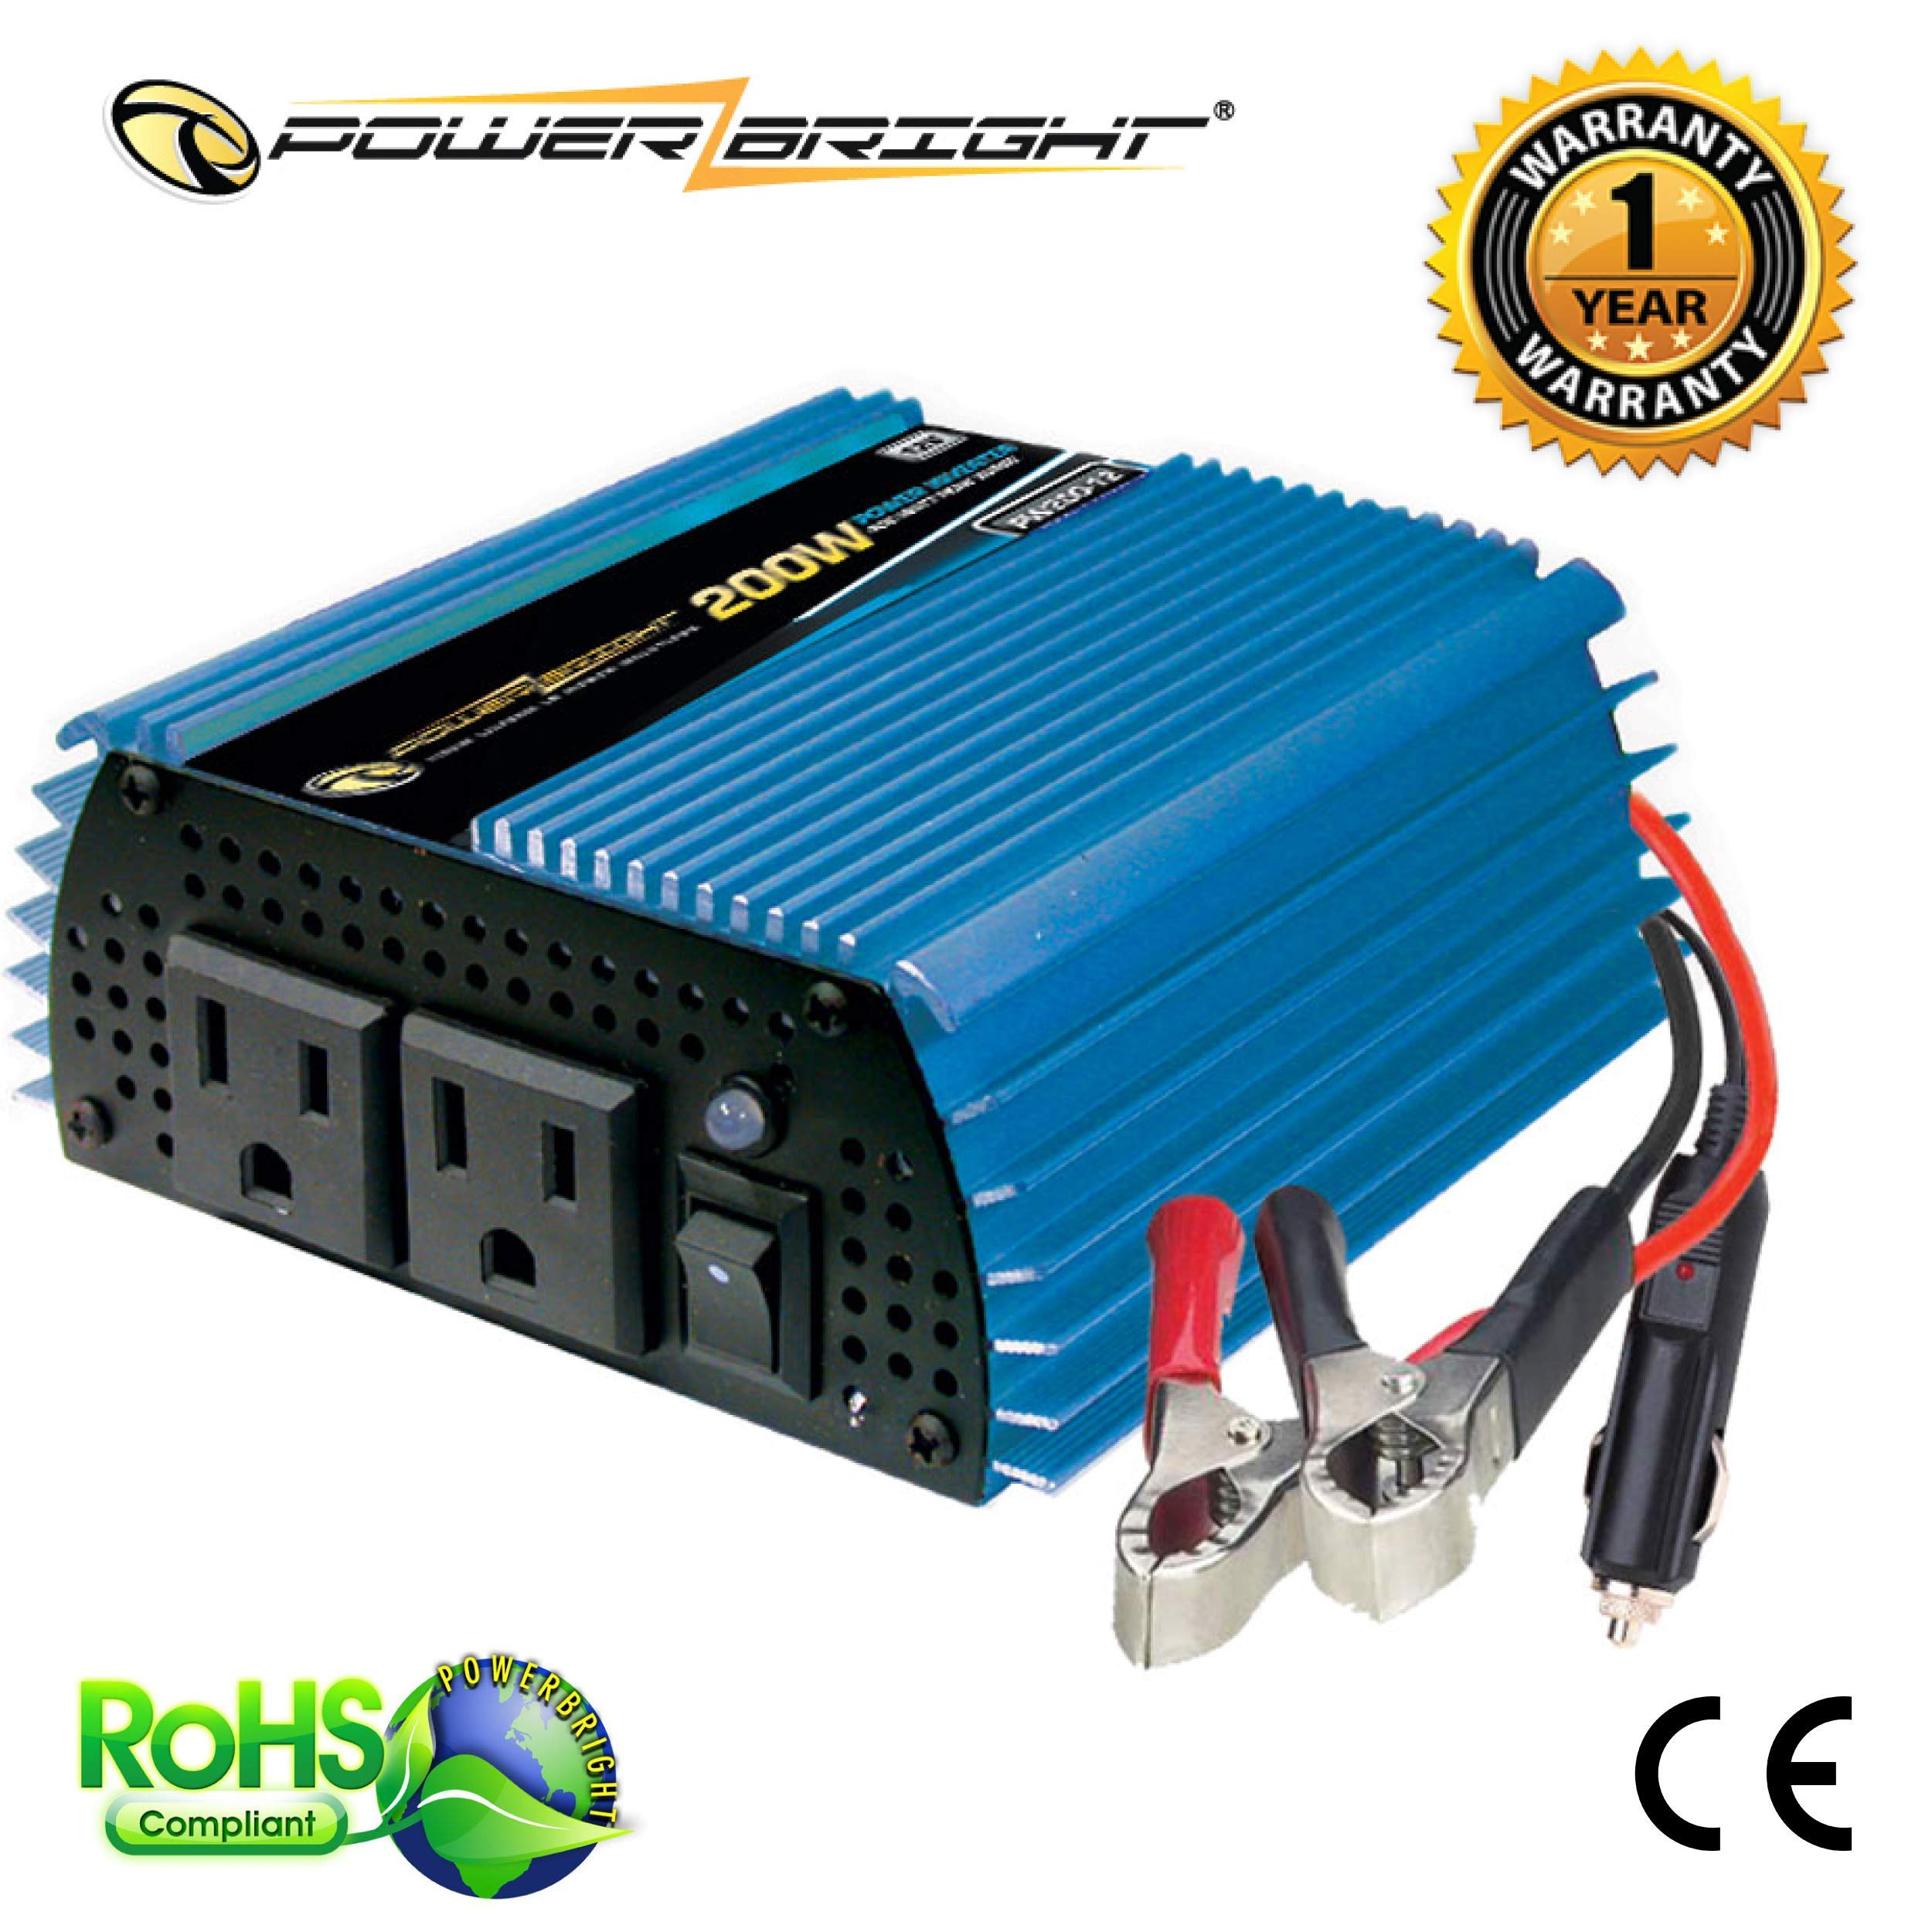 Power Bright Inverter